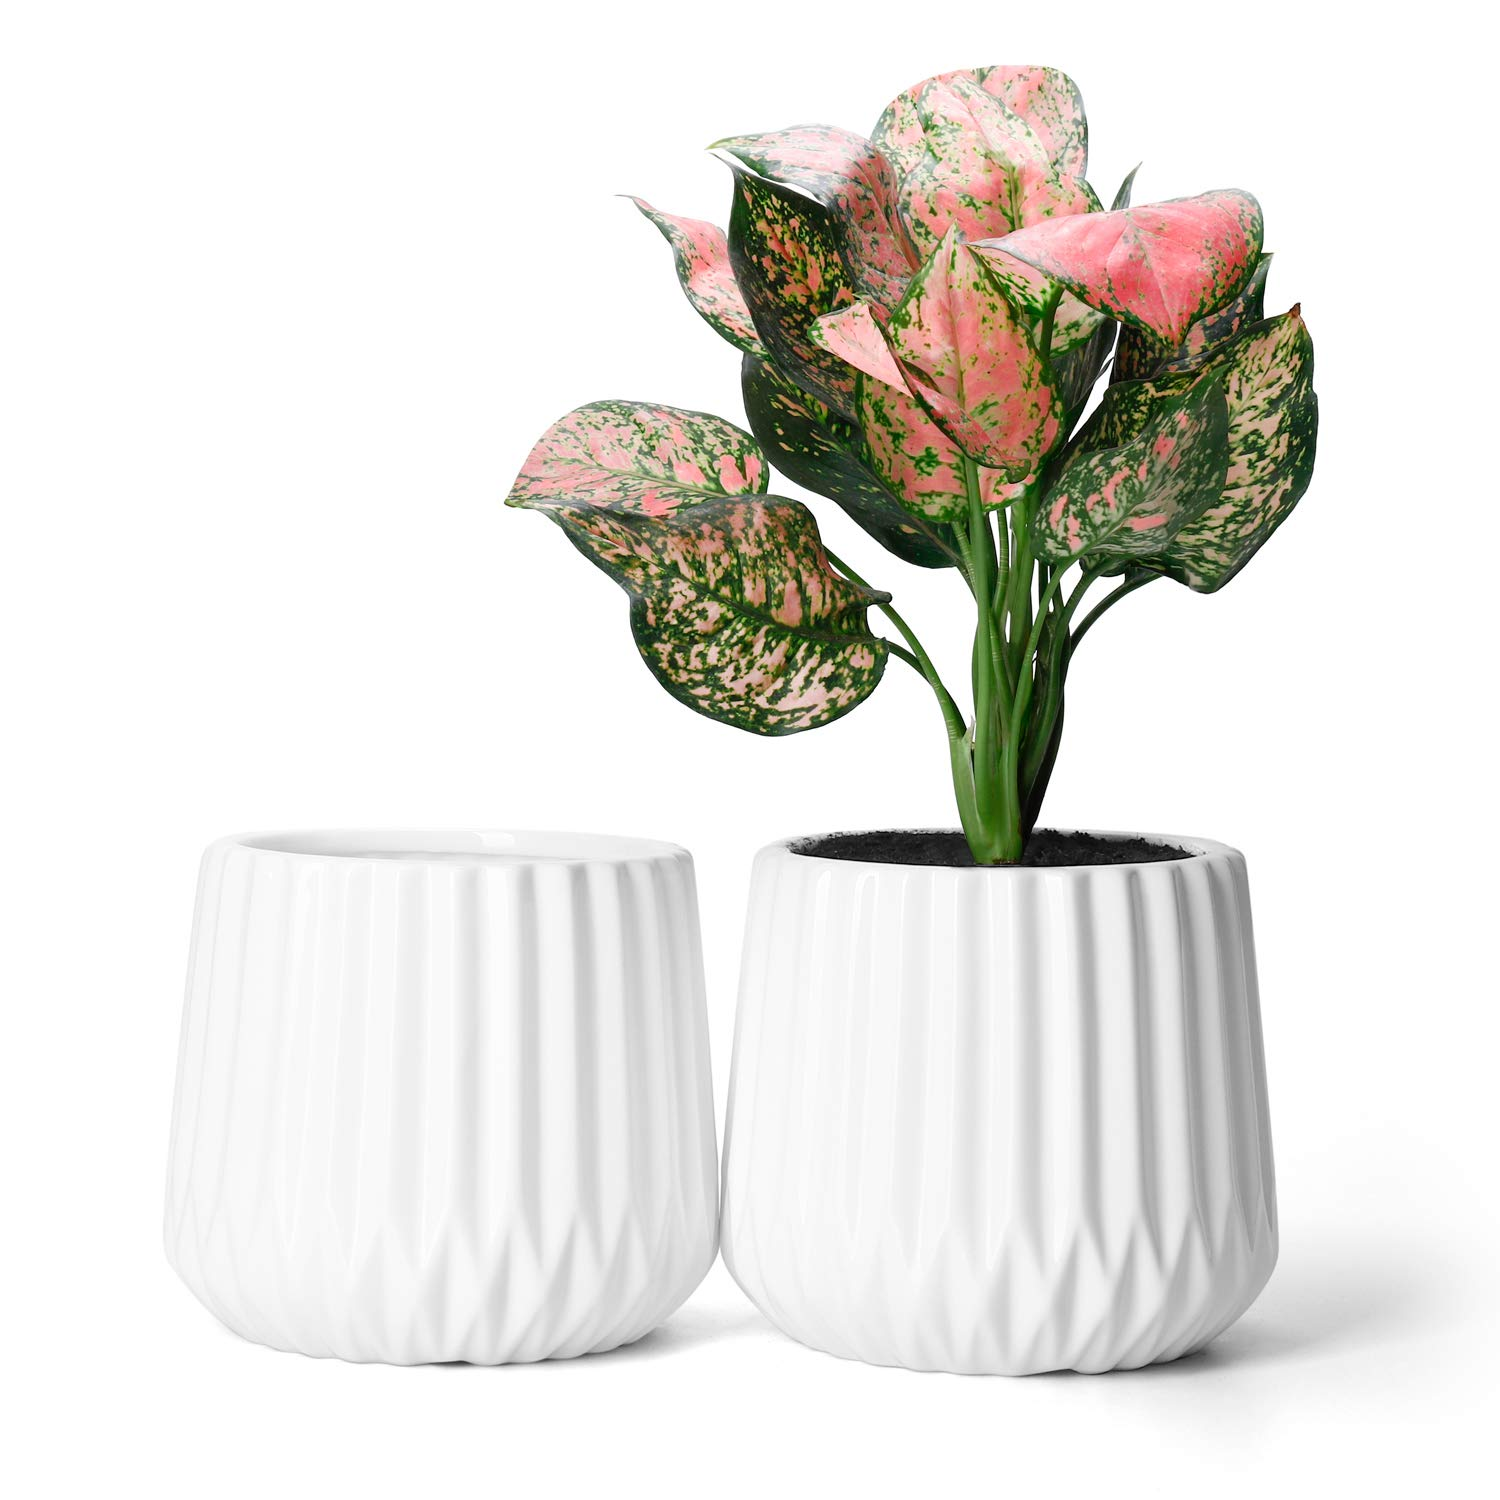 Potey Ceramic Planters Plant Flower Pots – 4.7 with Drain Hold Medium Container Decorative Flowers Enough Space – Set of 2, Pure White